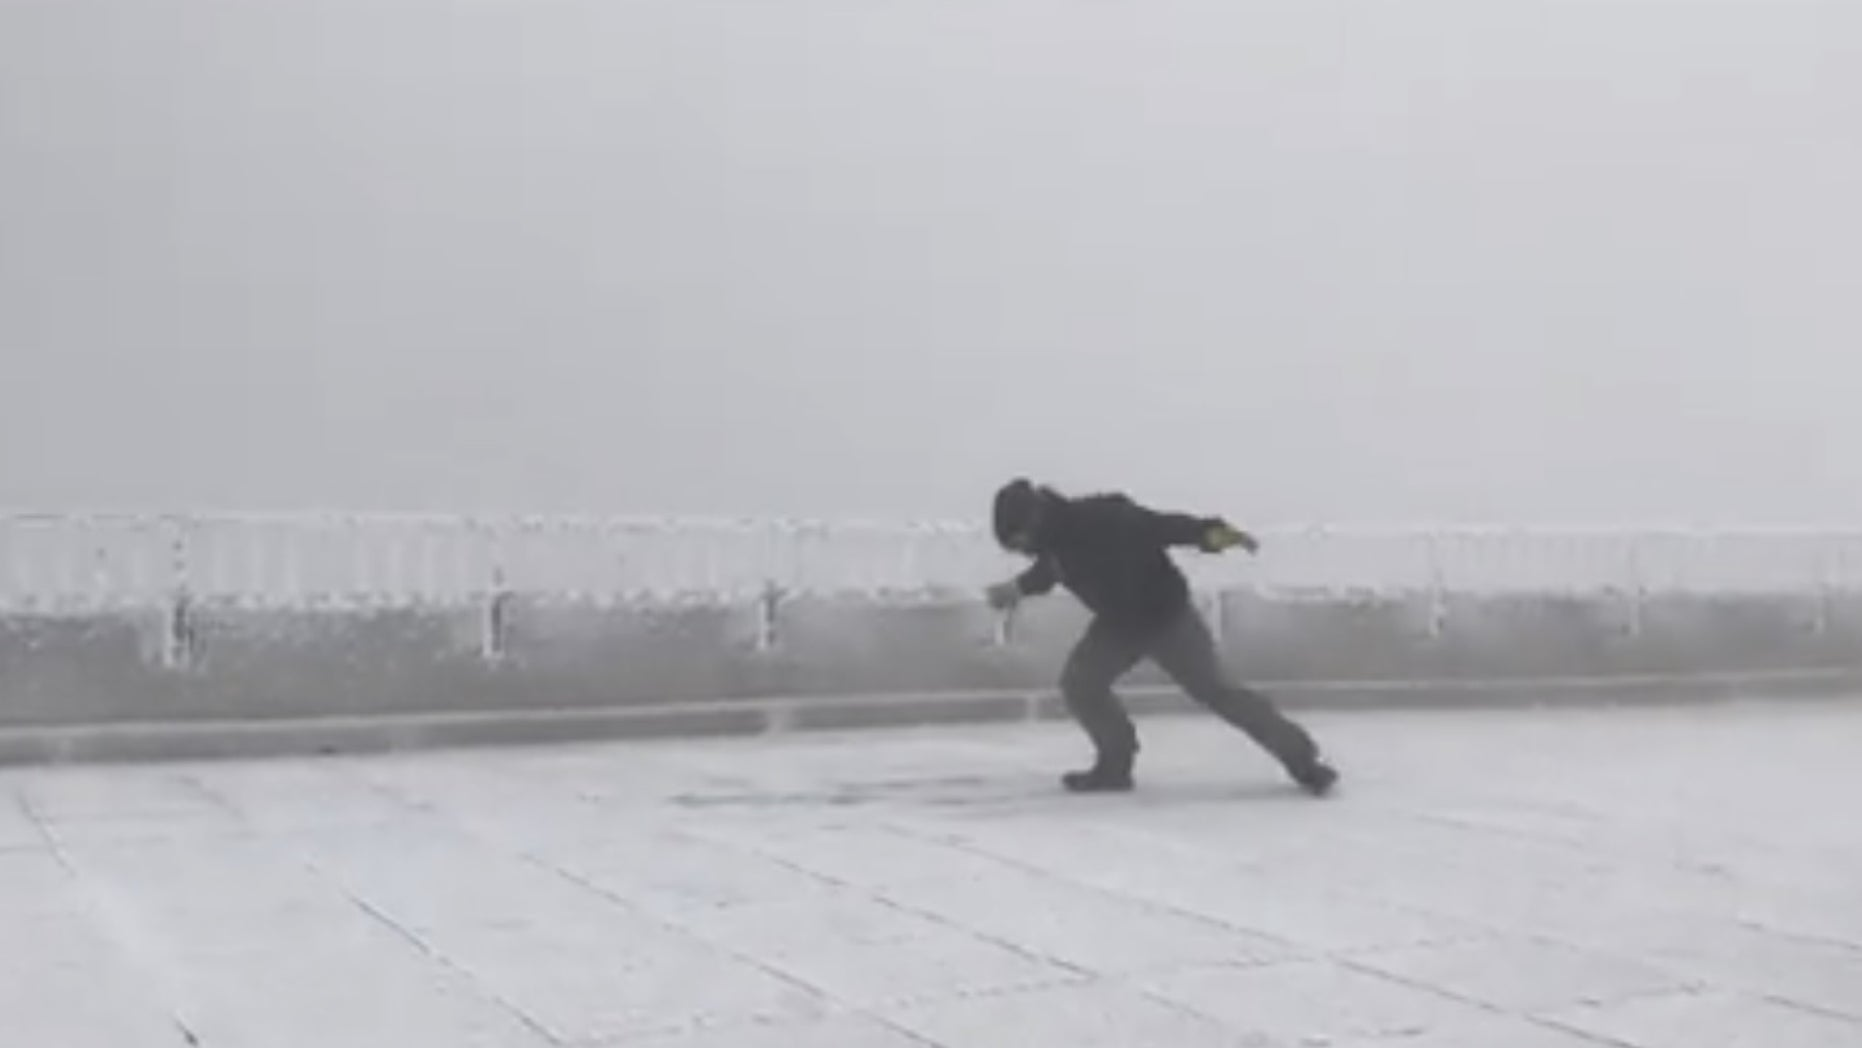 Tom Padham, a weather observer at the Mount Washington Observatory in New Hampshire, stepped out into wind gusts of more than 100 mph Friday.